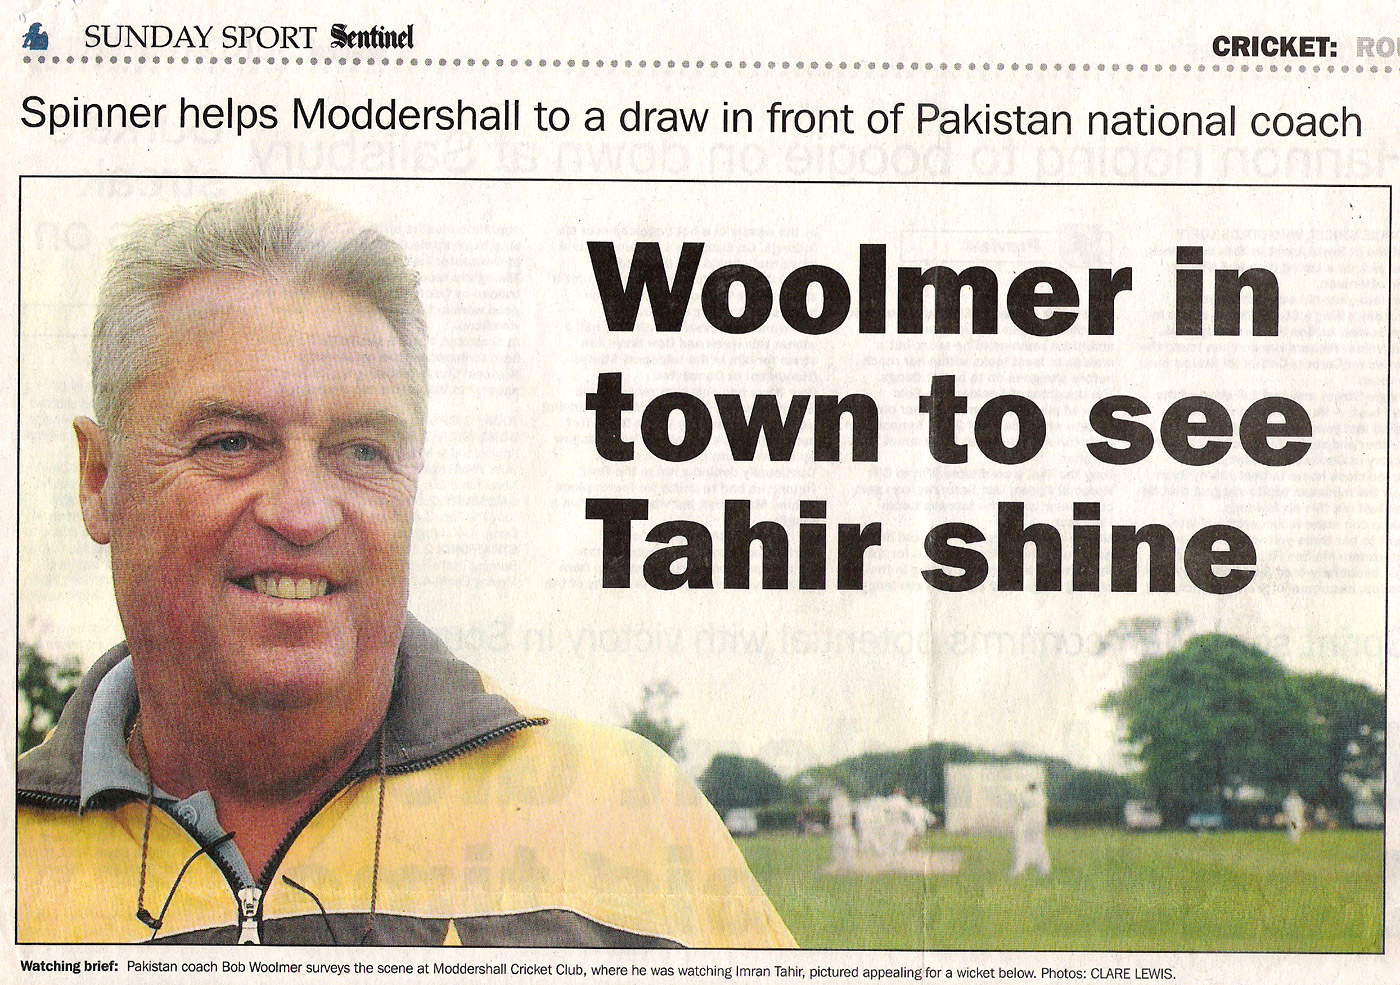 A newspaper report about Bob Woolmer's scouting trip to see Imran Tahir bowl in the leagues